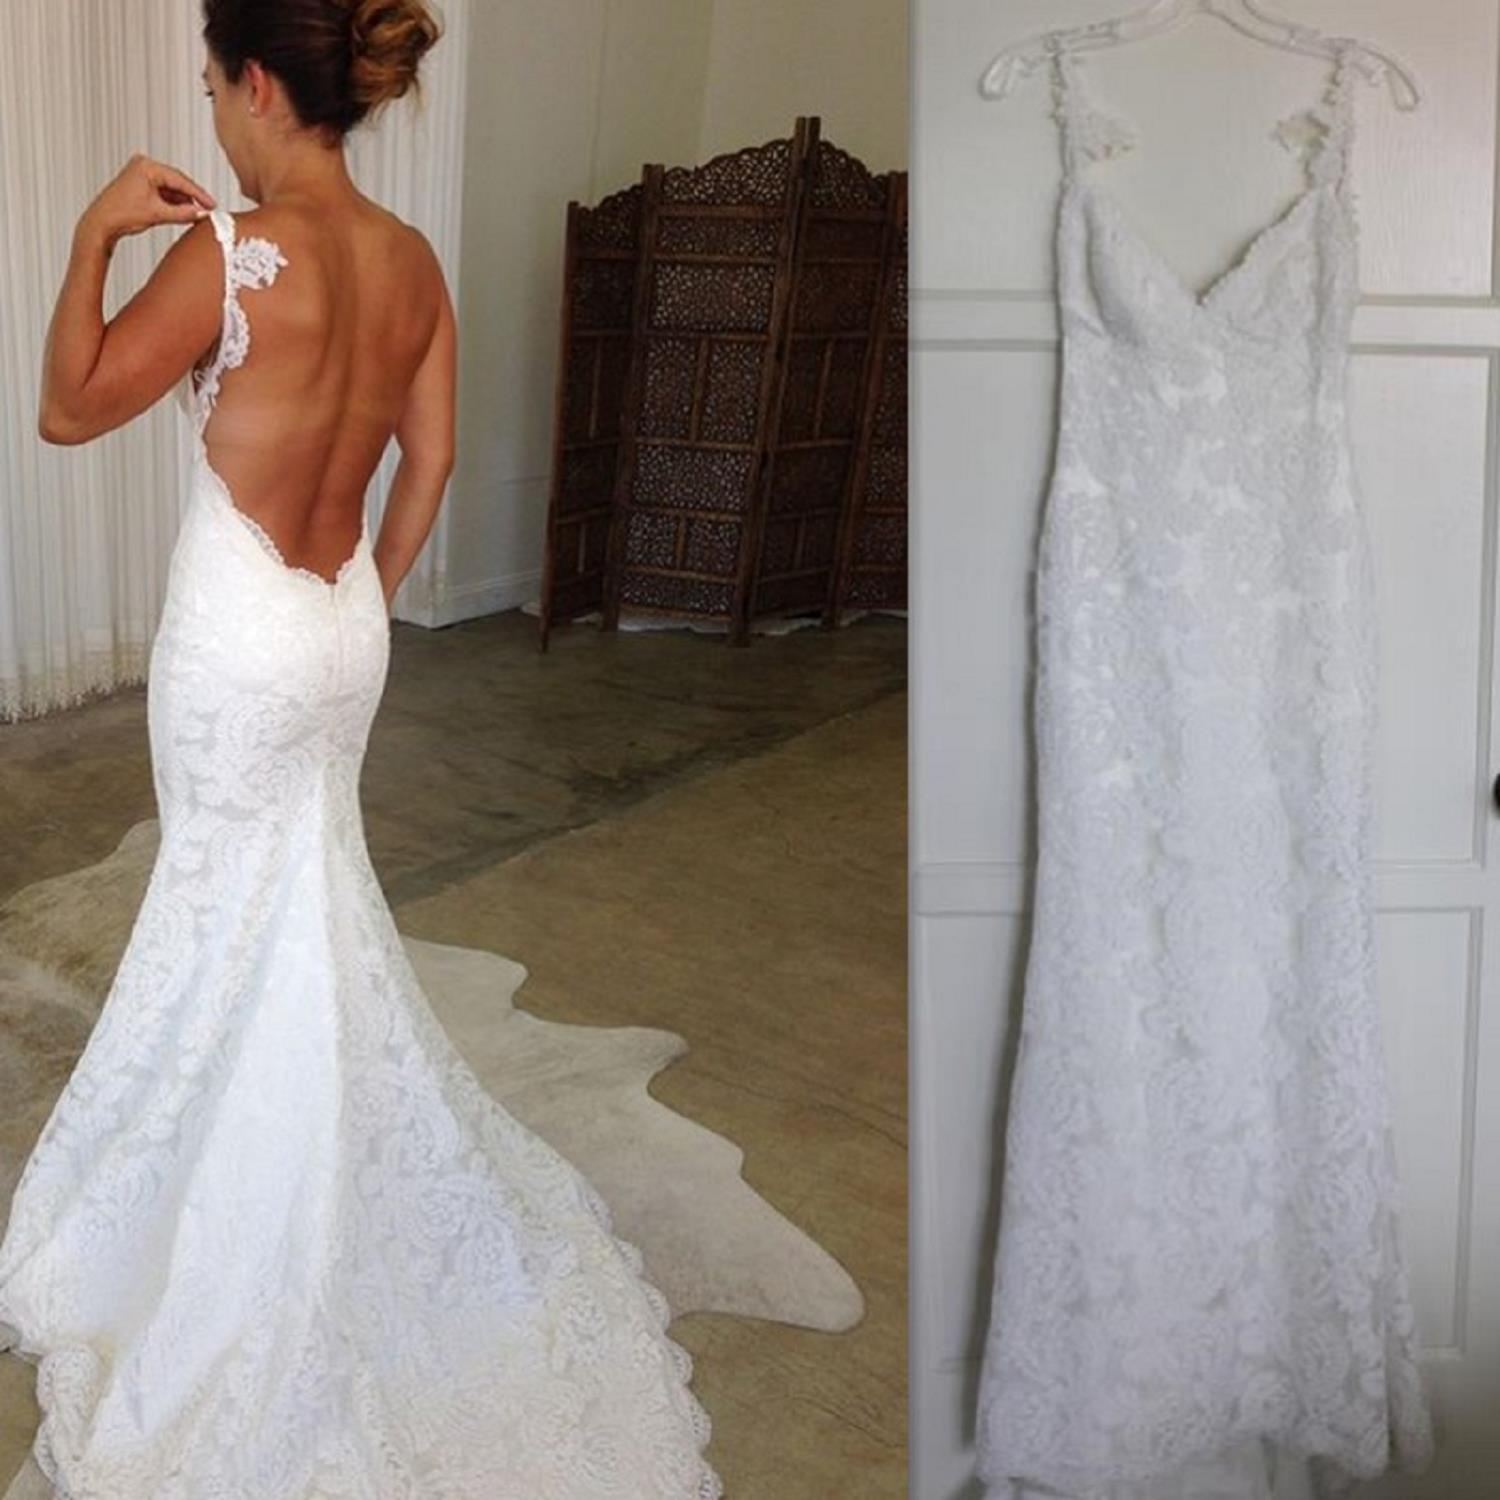 2018 Beach White Lace Backless Wedding Dresses Mermaid Spaghetti ...